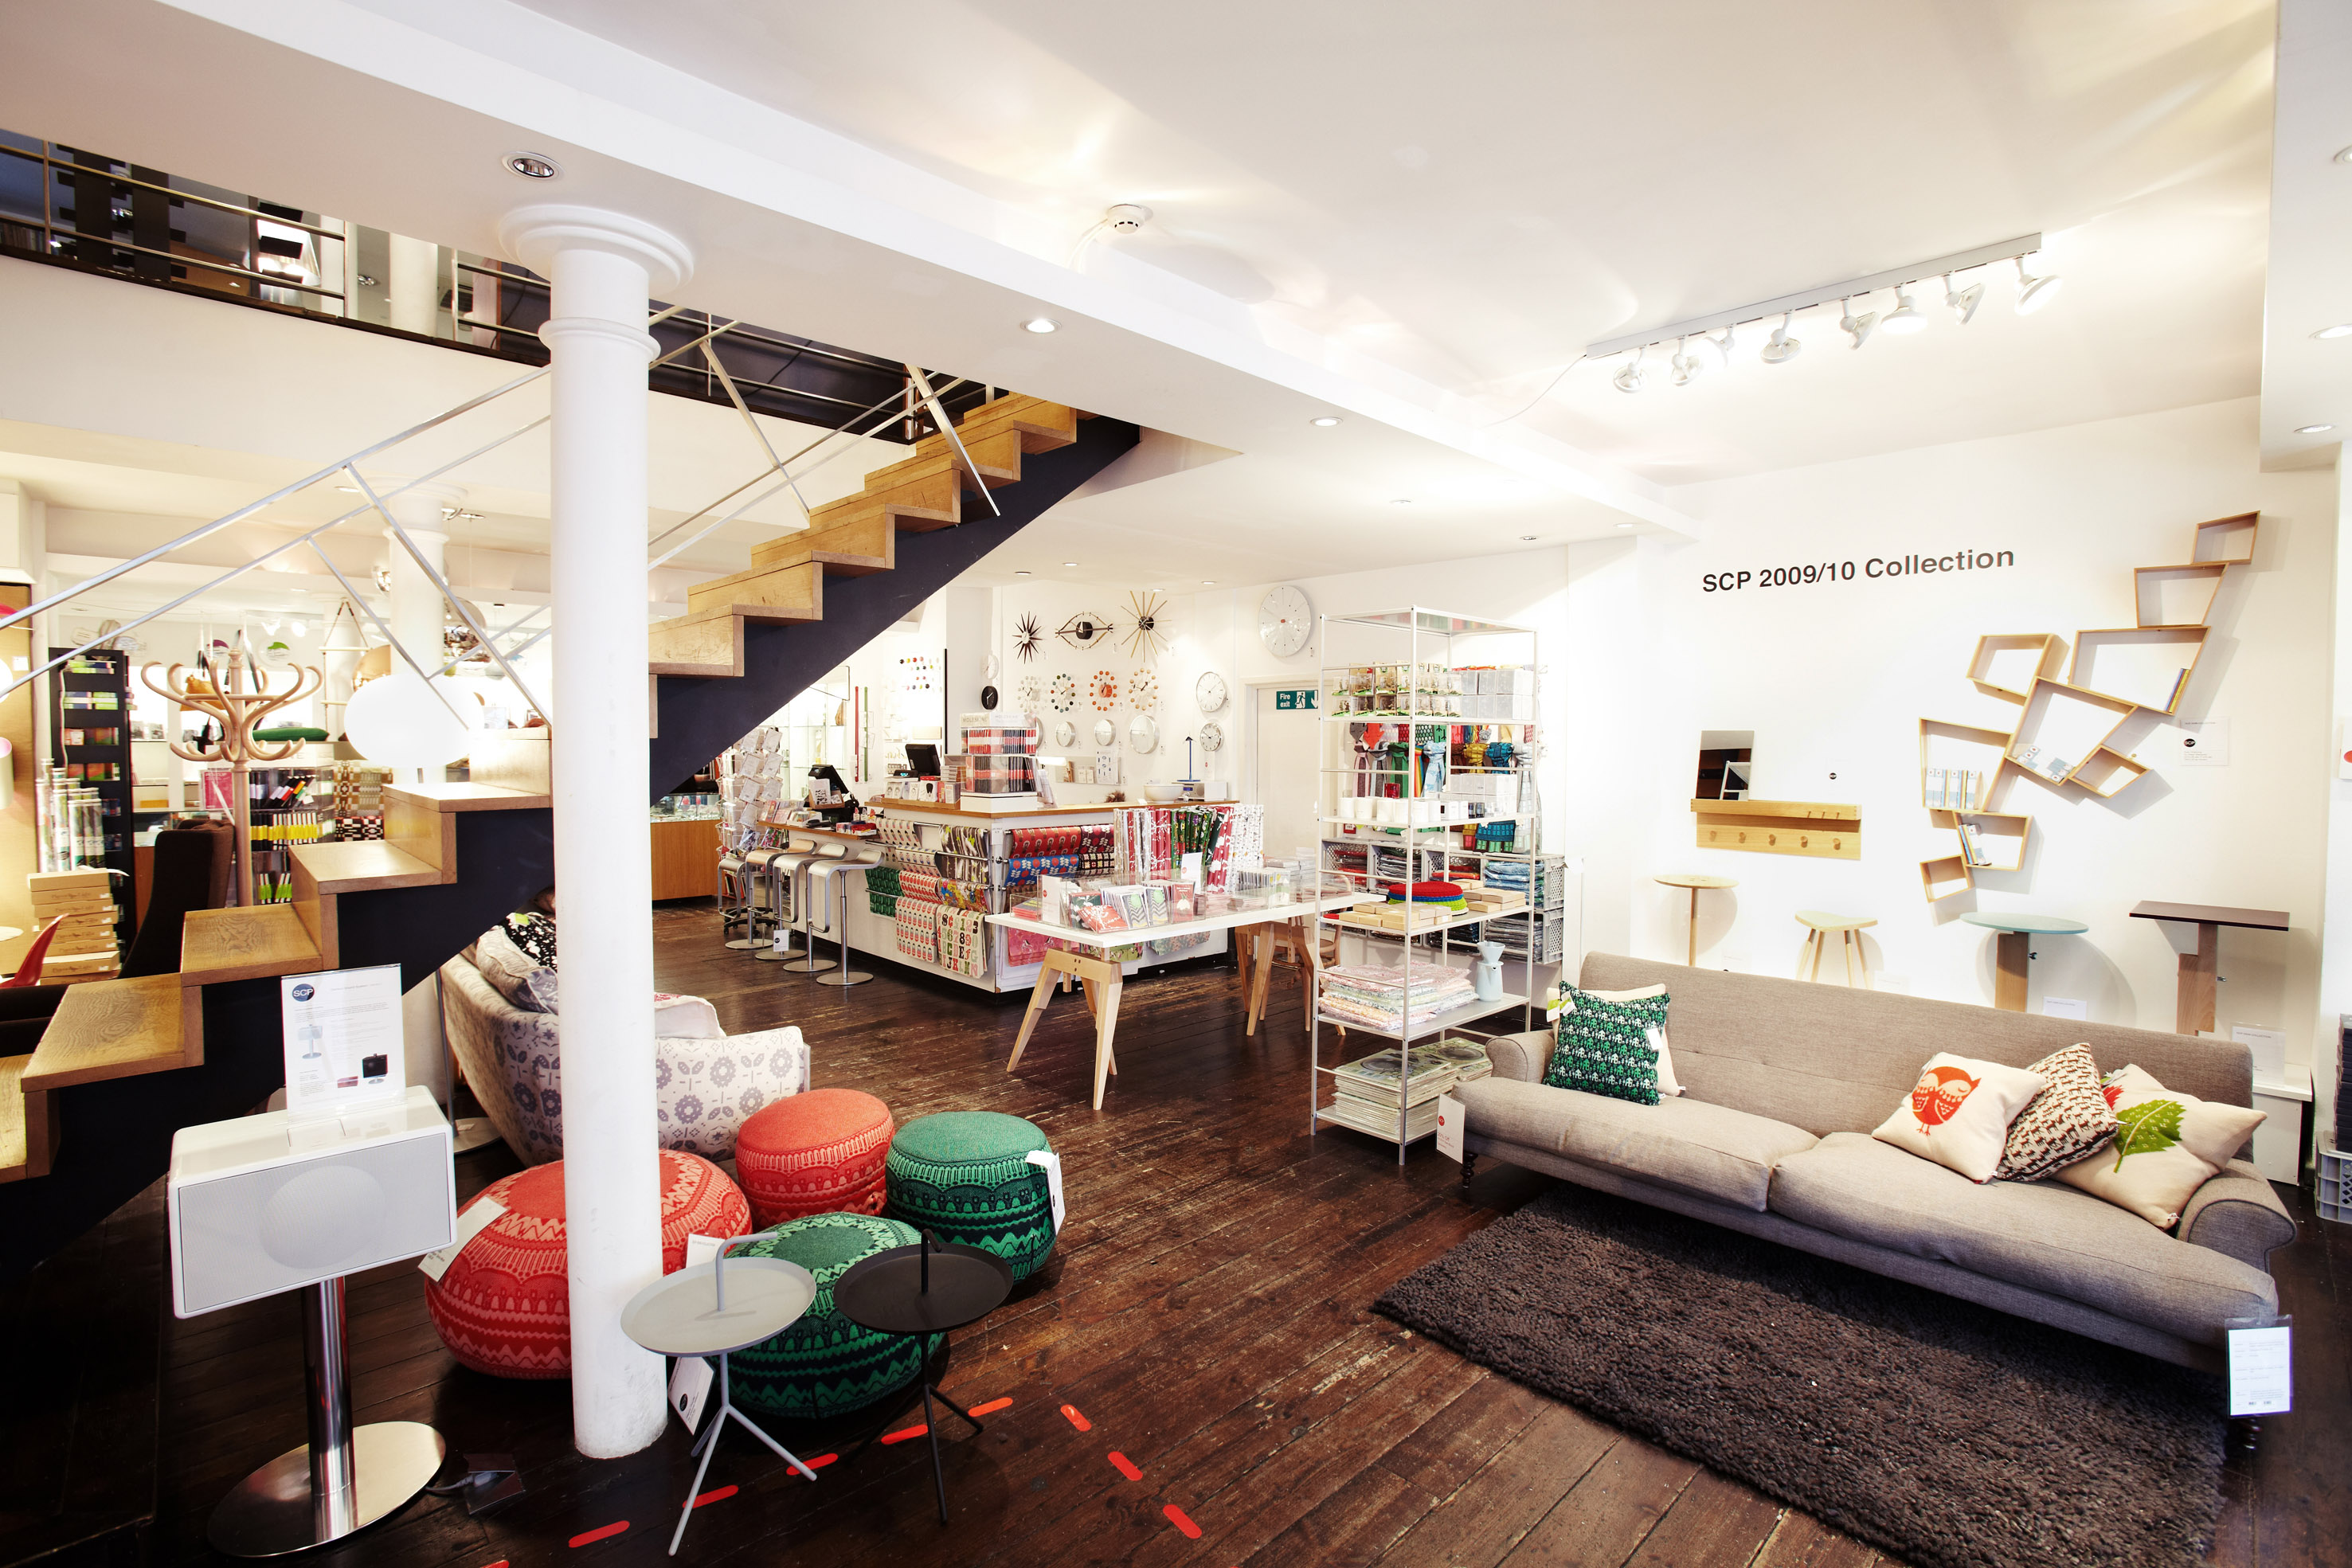 Magasin Cake Design Luxembourg : Adresses shopping deco & design a Londres